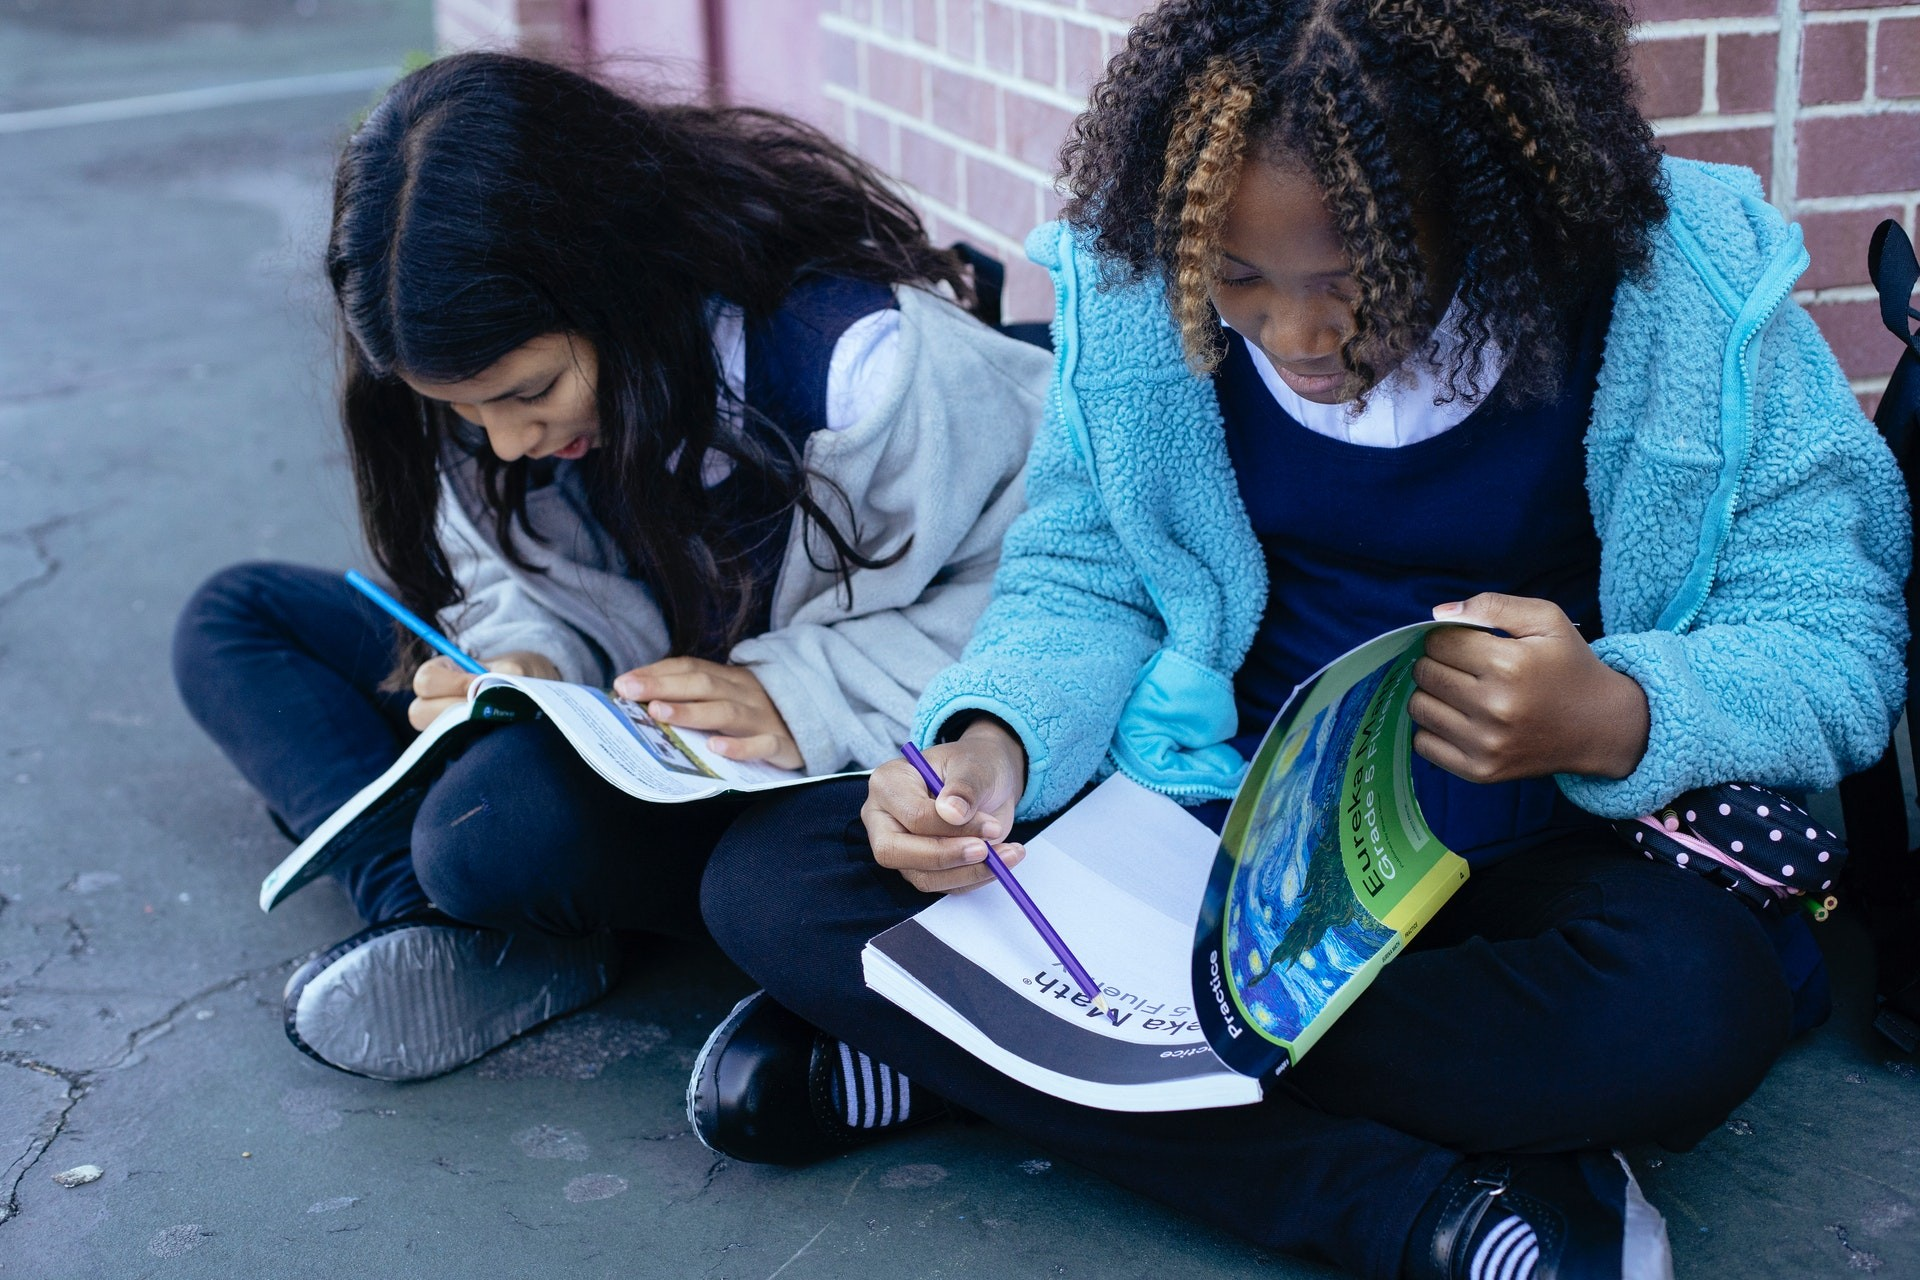 Two students sit outside against a brick wall, working in notebooks.